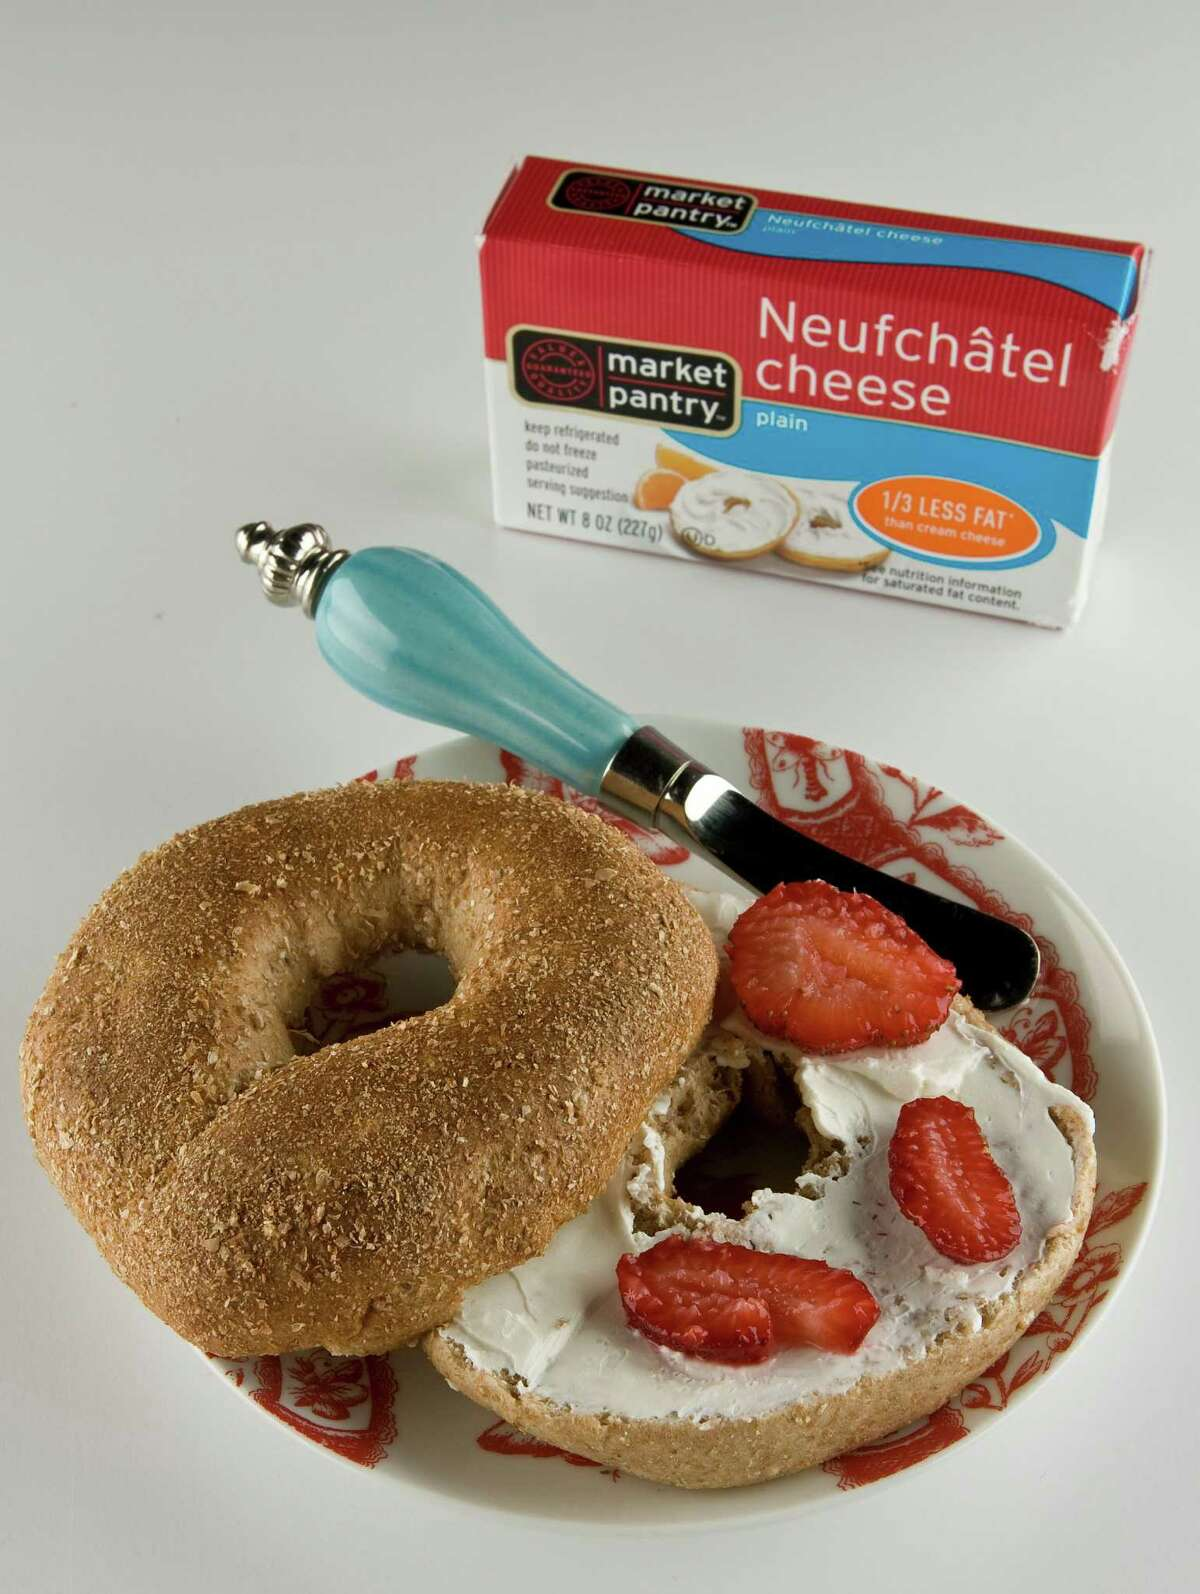 A Thomas whole wheat bagel withMarket Pantry Neufchatel cheese for back to school food feature, photographed in the Houston Chronicle Studio Thursday, July 16, 2009, in Houston. ( James Nielsen / Chronicle )